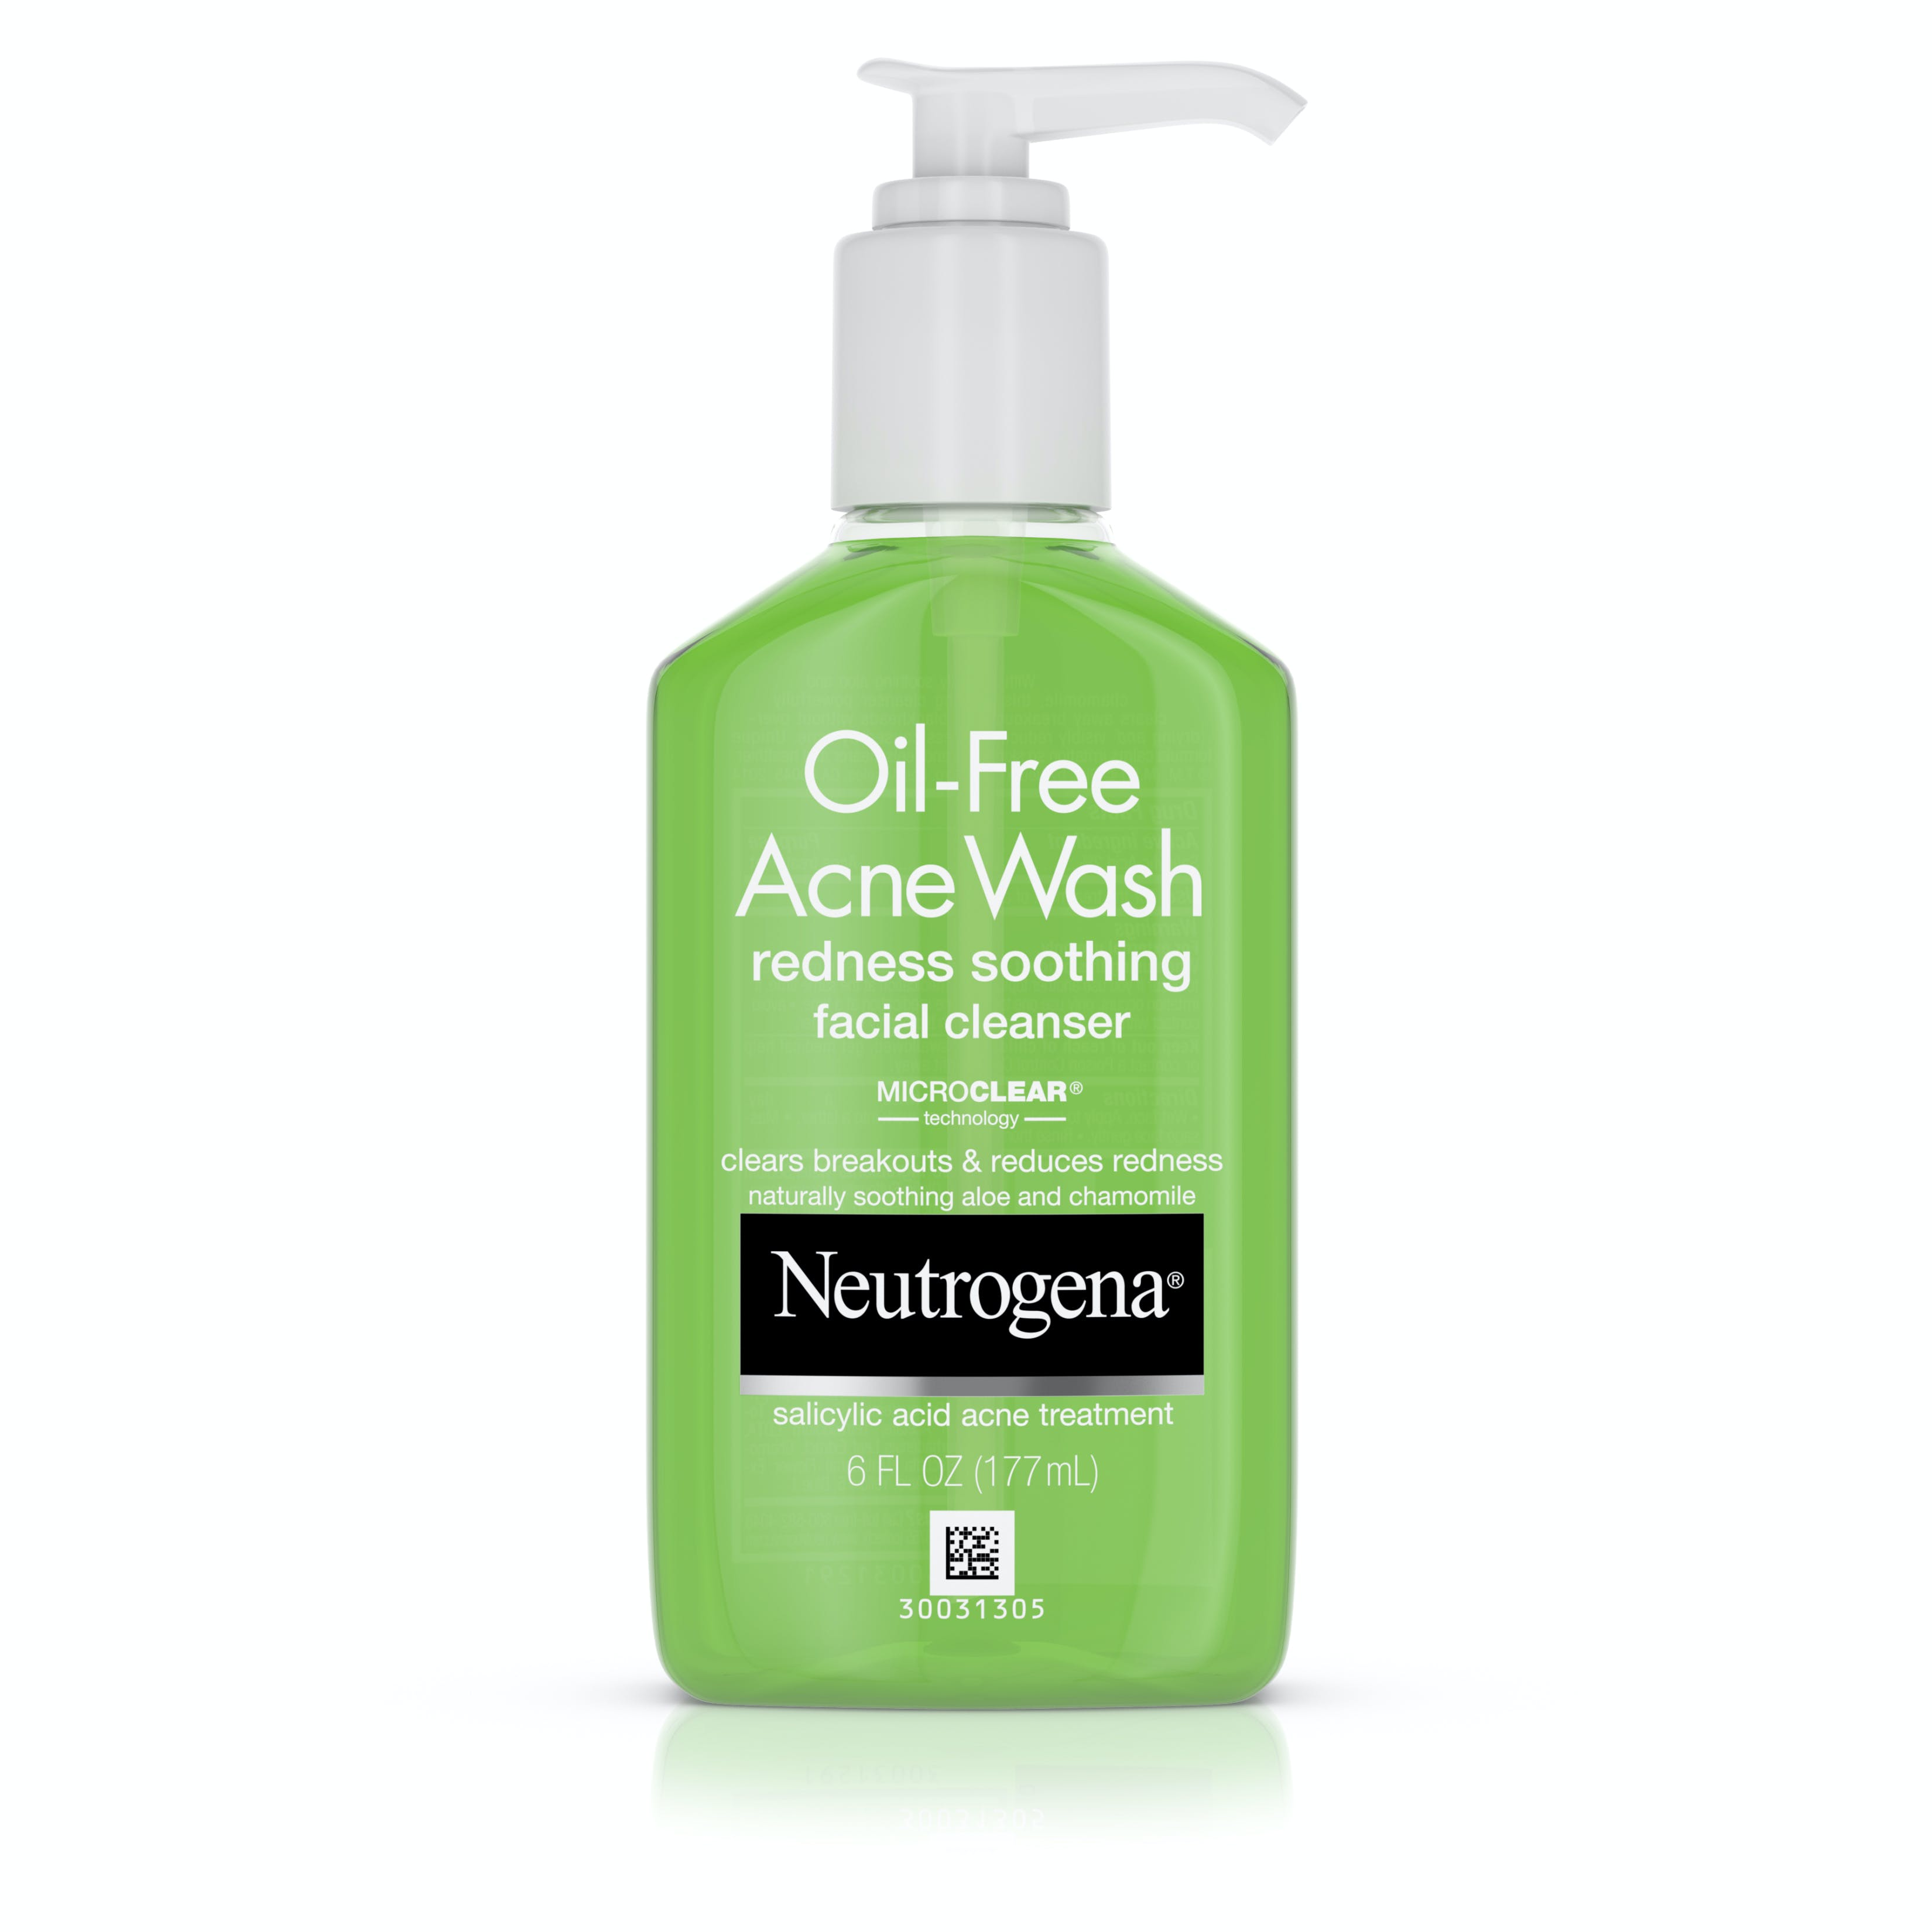 Best over the counter facial cleanser